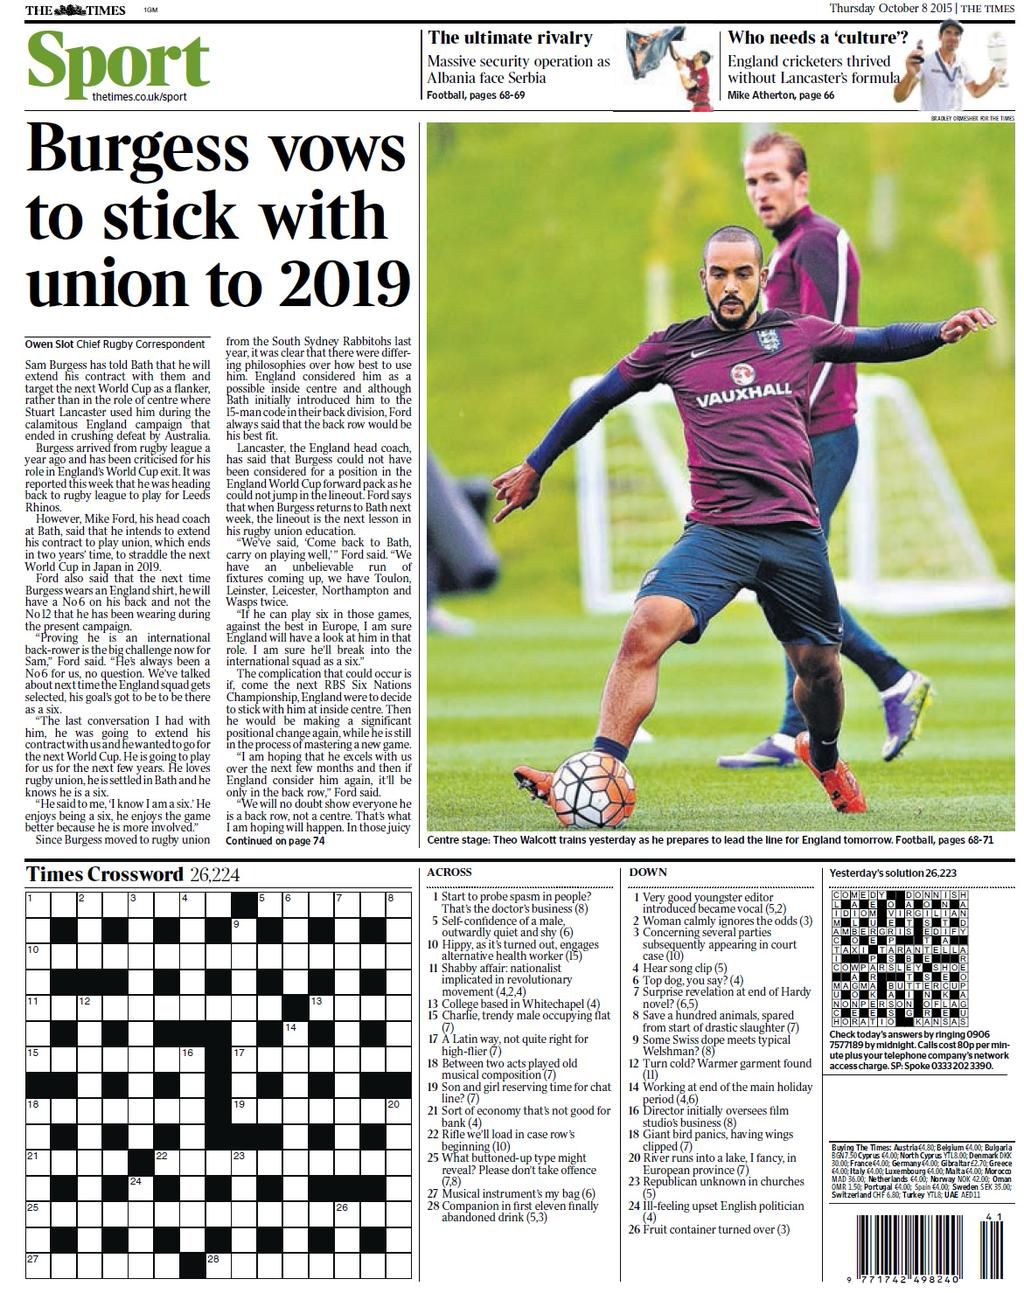 Thursday's Times back page: Burgess vows to stick with union to 2019 #tomorrowspaperstoday #bbcpapers http://t.co/tYSrhqE2LR